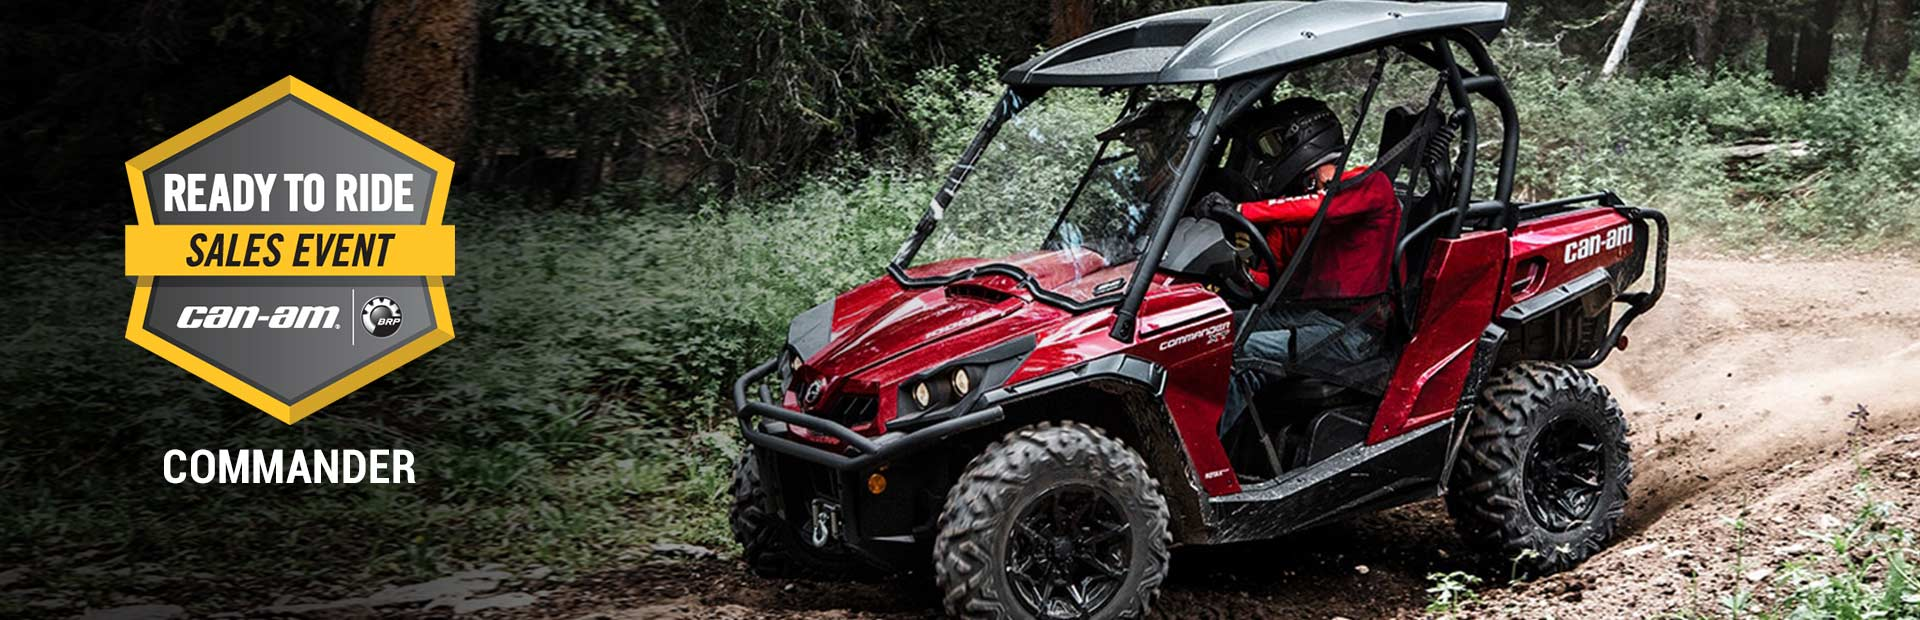 Can-Am: Ready to Ride Sales Event - COMMANDER